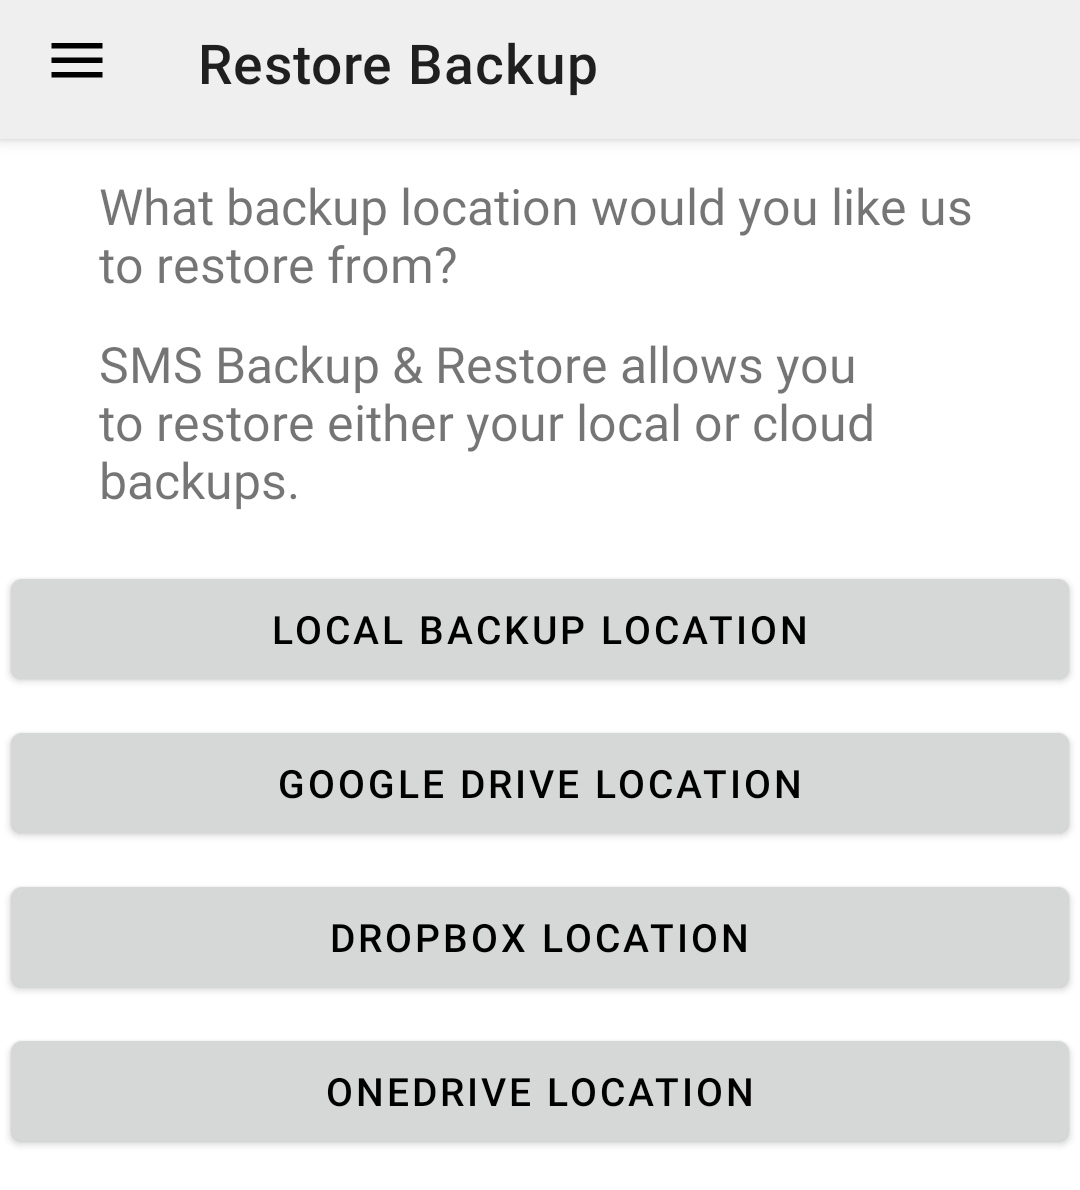 SMS Backup and Restore Backup options